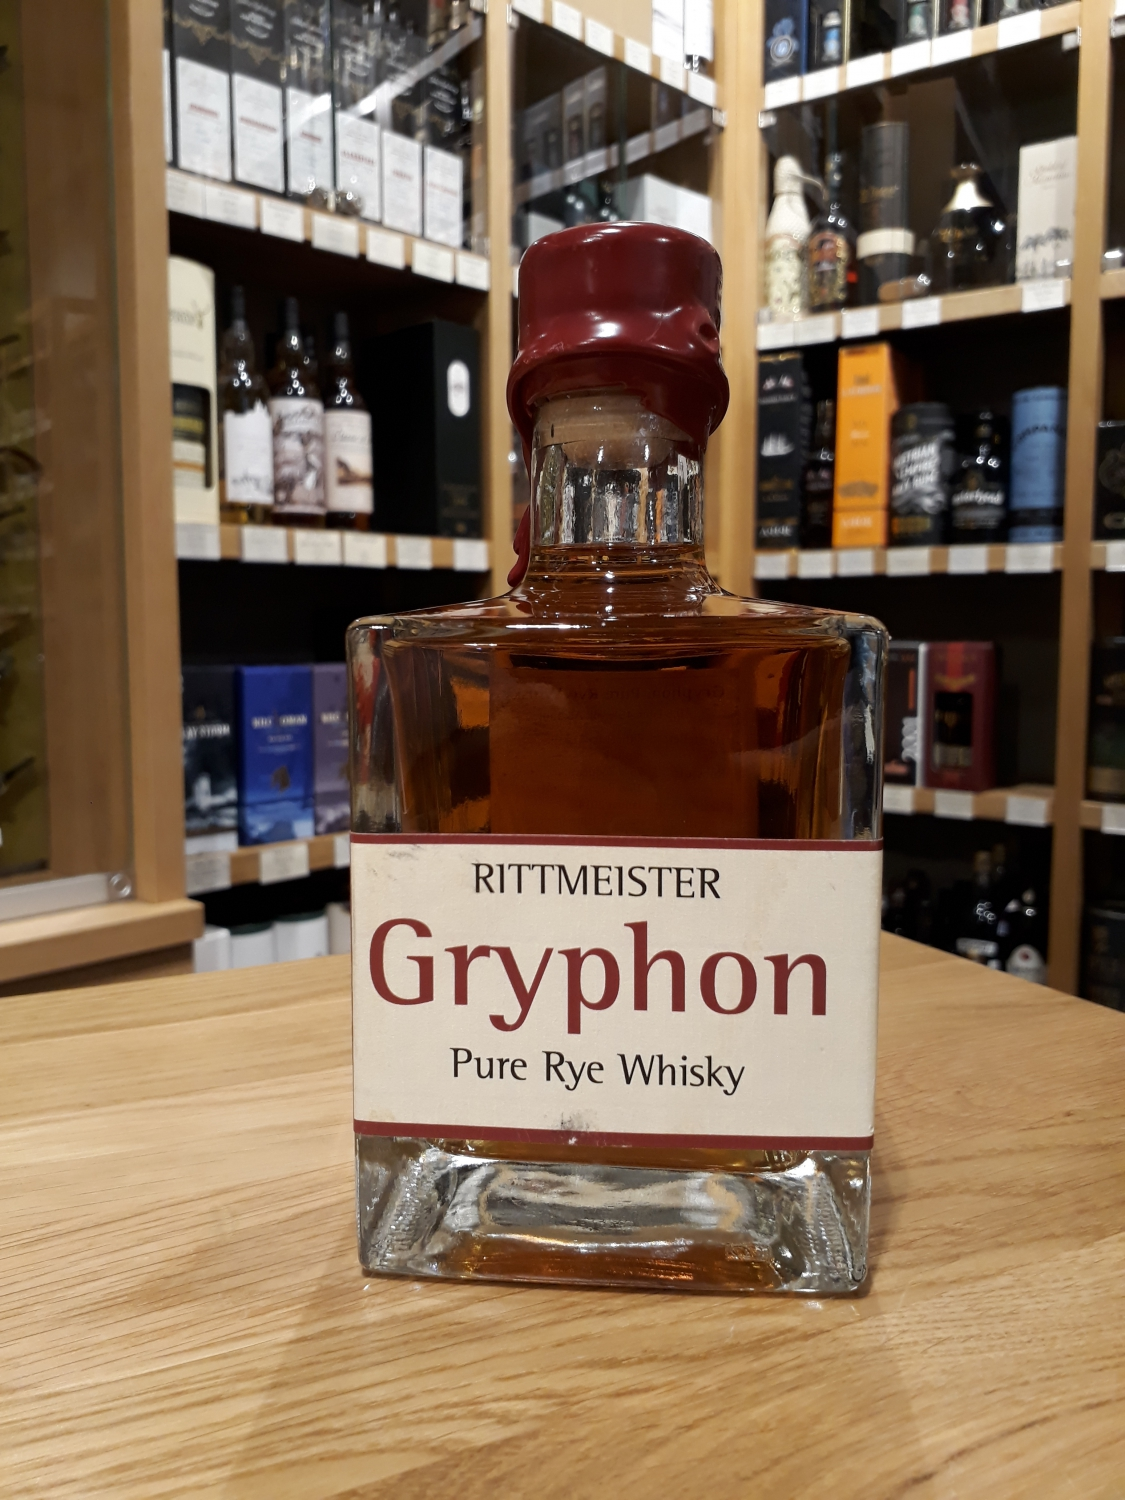 Rittmeister Gryphon Pure Rye Whisky